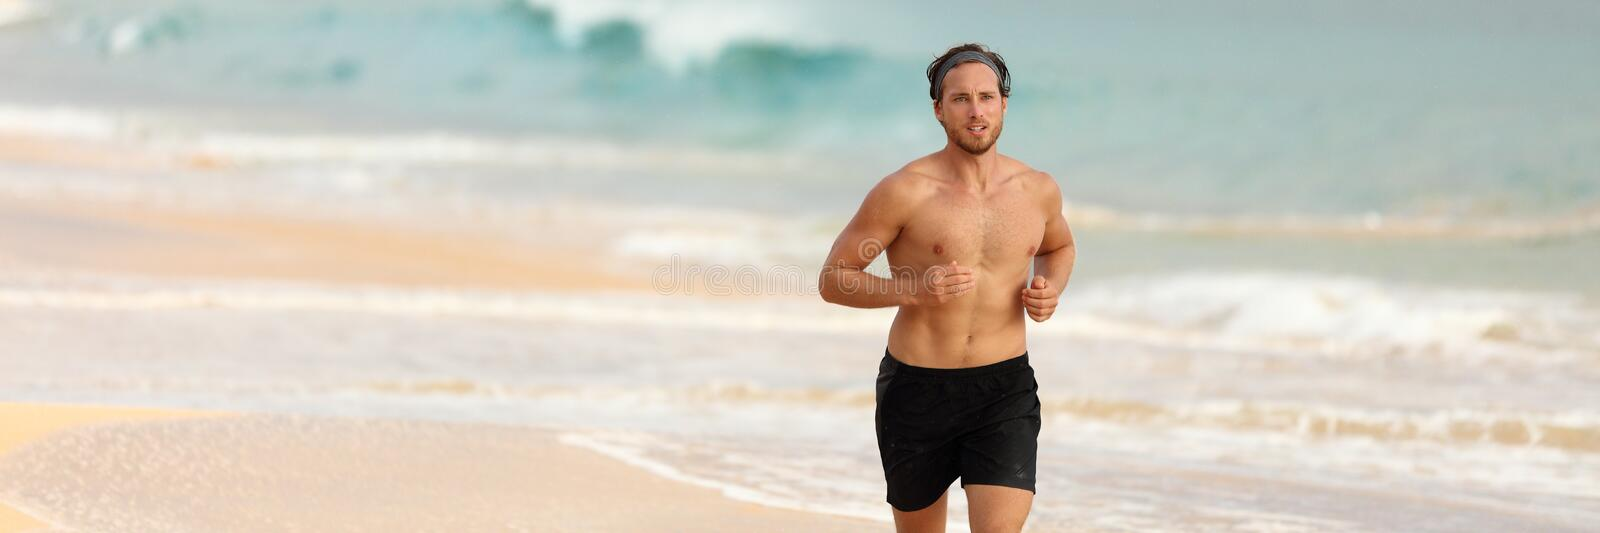 Fitness runner running topless on beach banner royalty free stock photos